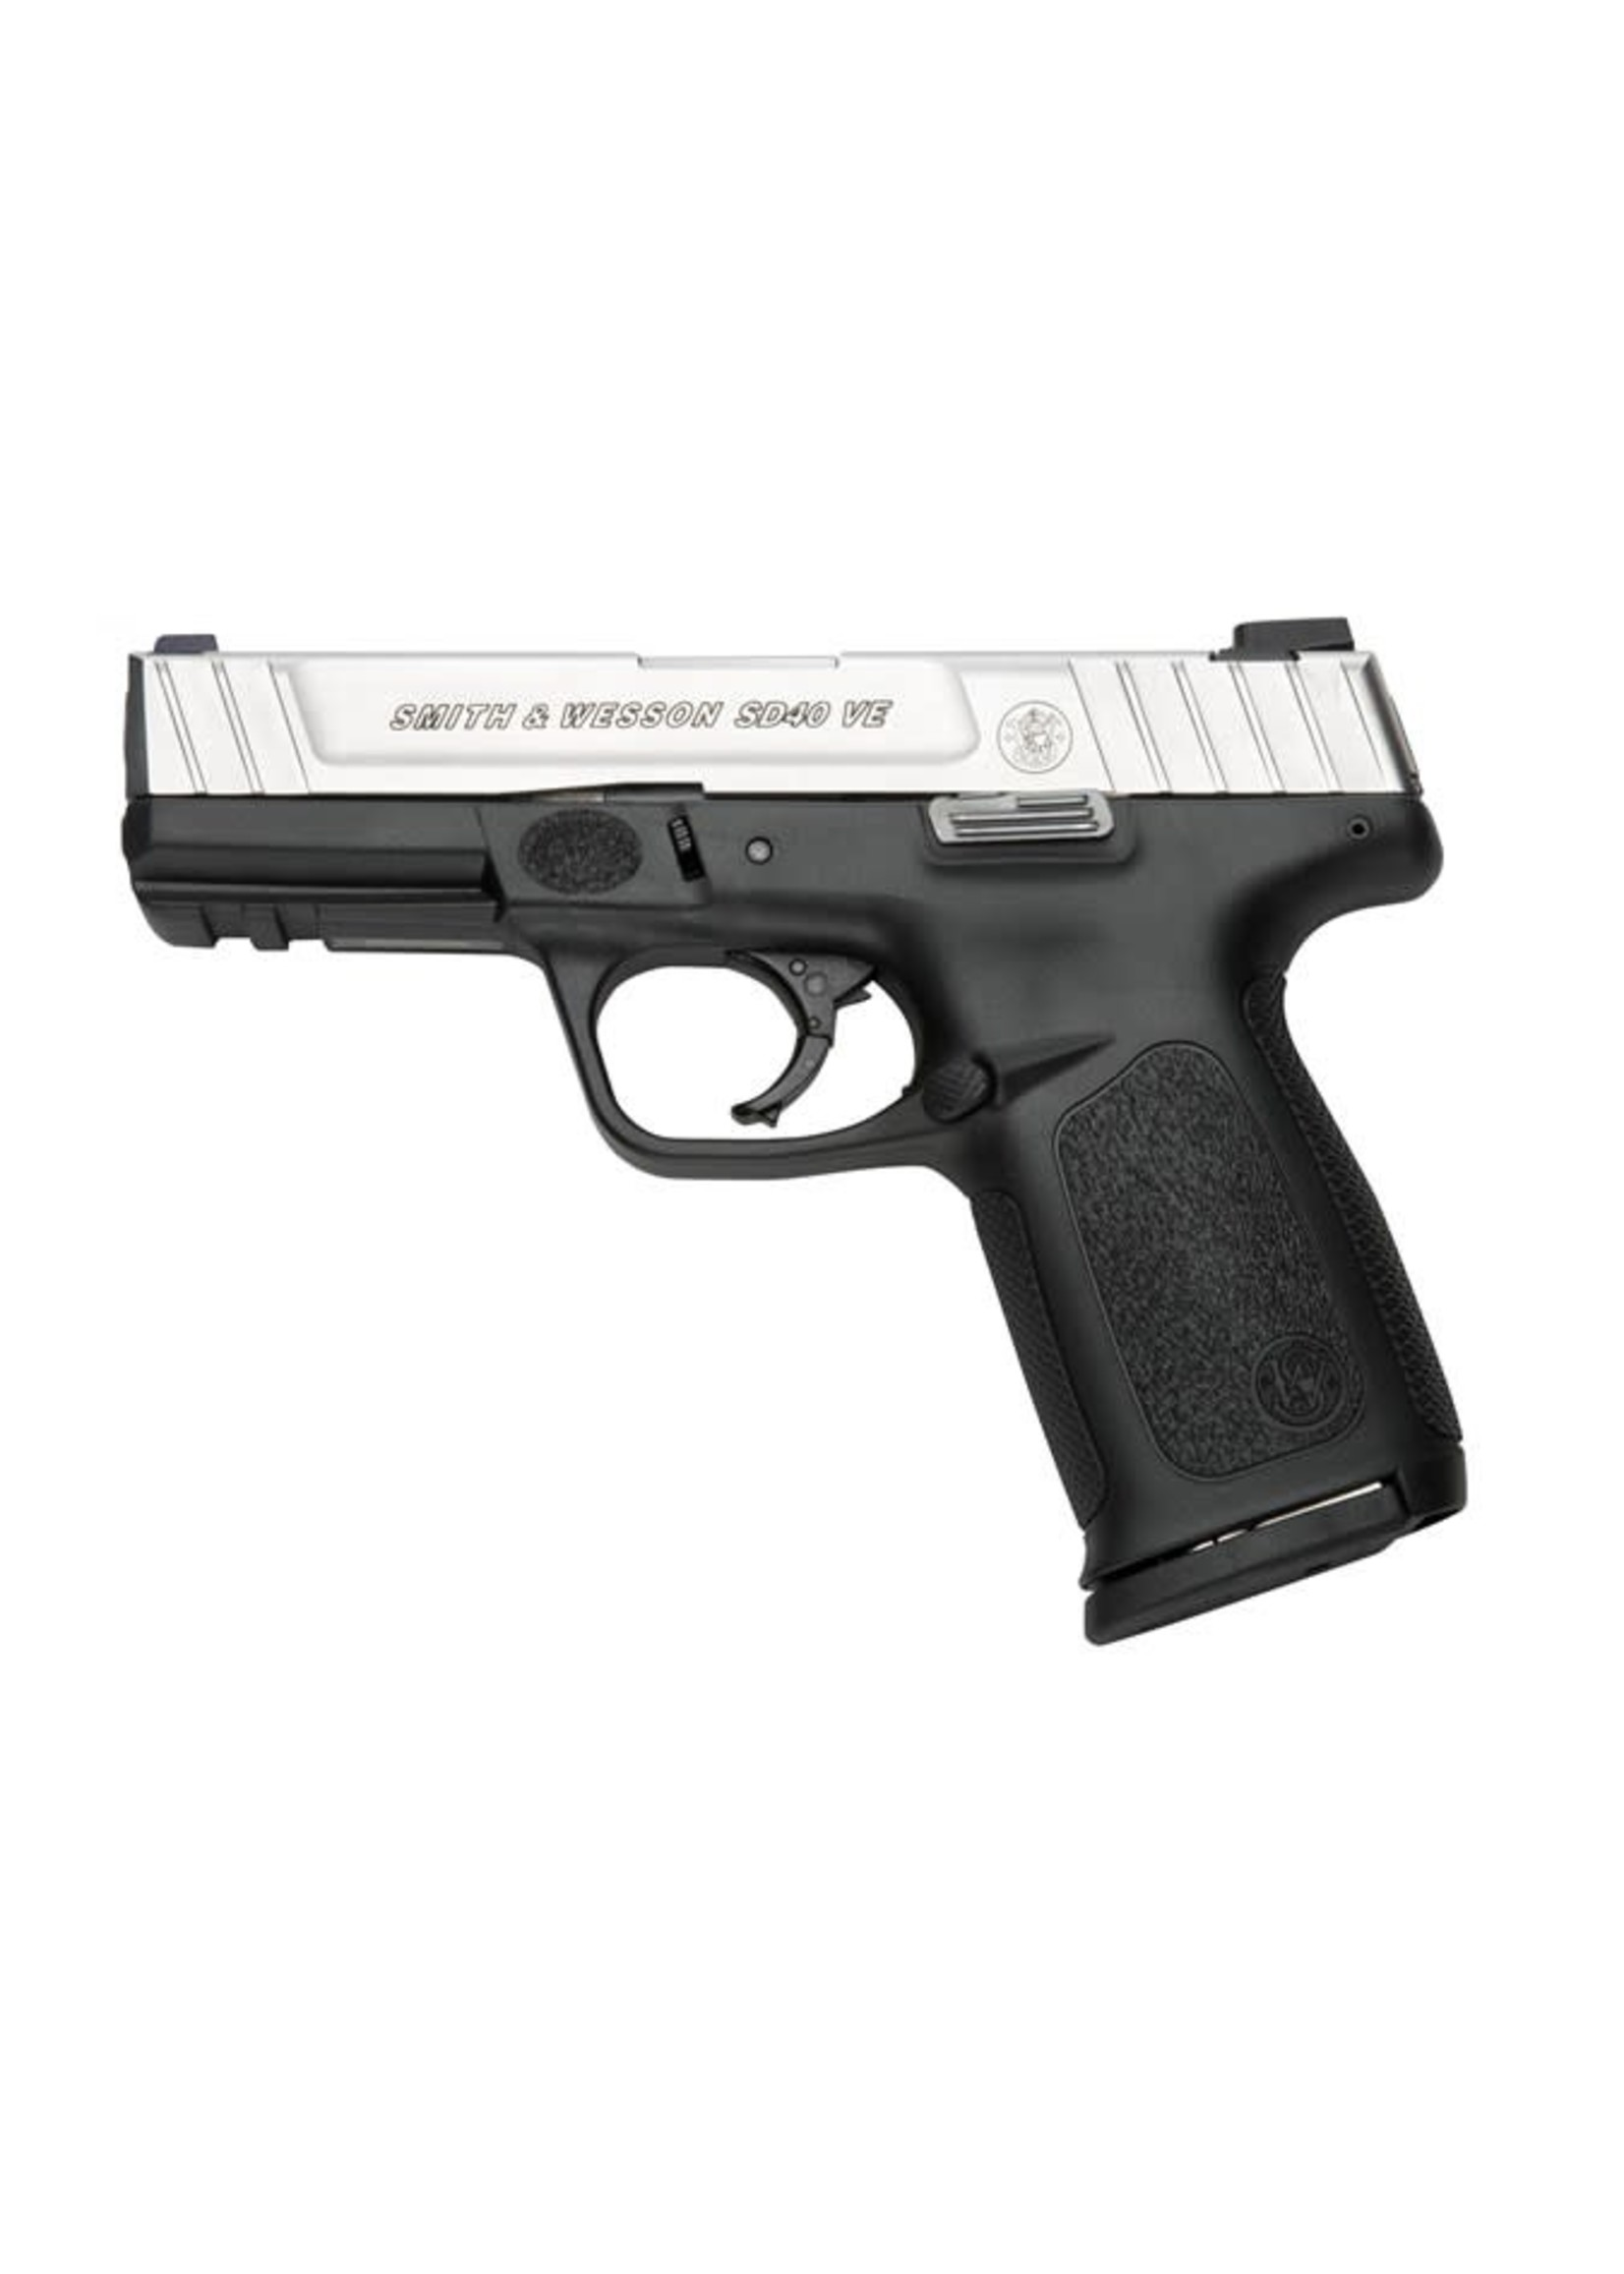 """Smith and Wesson (S&W) Smith & Wesson, SD40VE, Semi-Automatic, 40 S&W, 4"""" Barrel, Polymer Frame, Two-Tone Finish, Black Frame, Silver Slide, Fixed Sights, 14+1, 2 Magazines"""